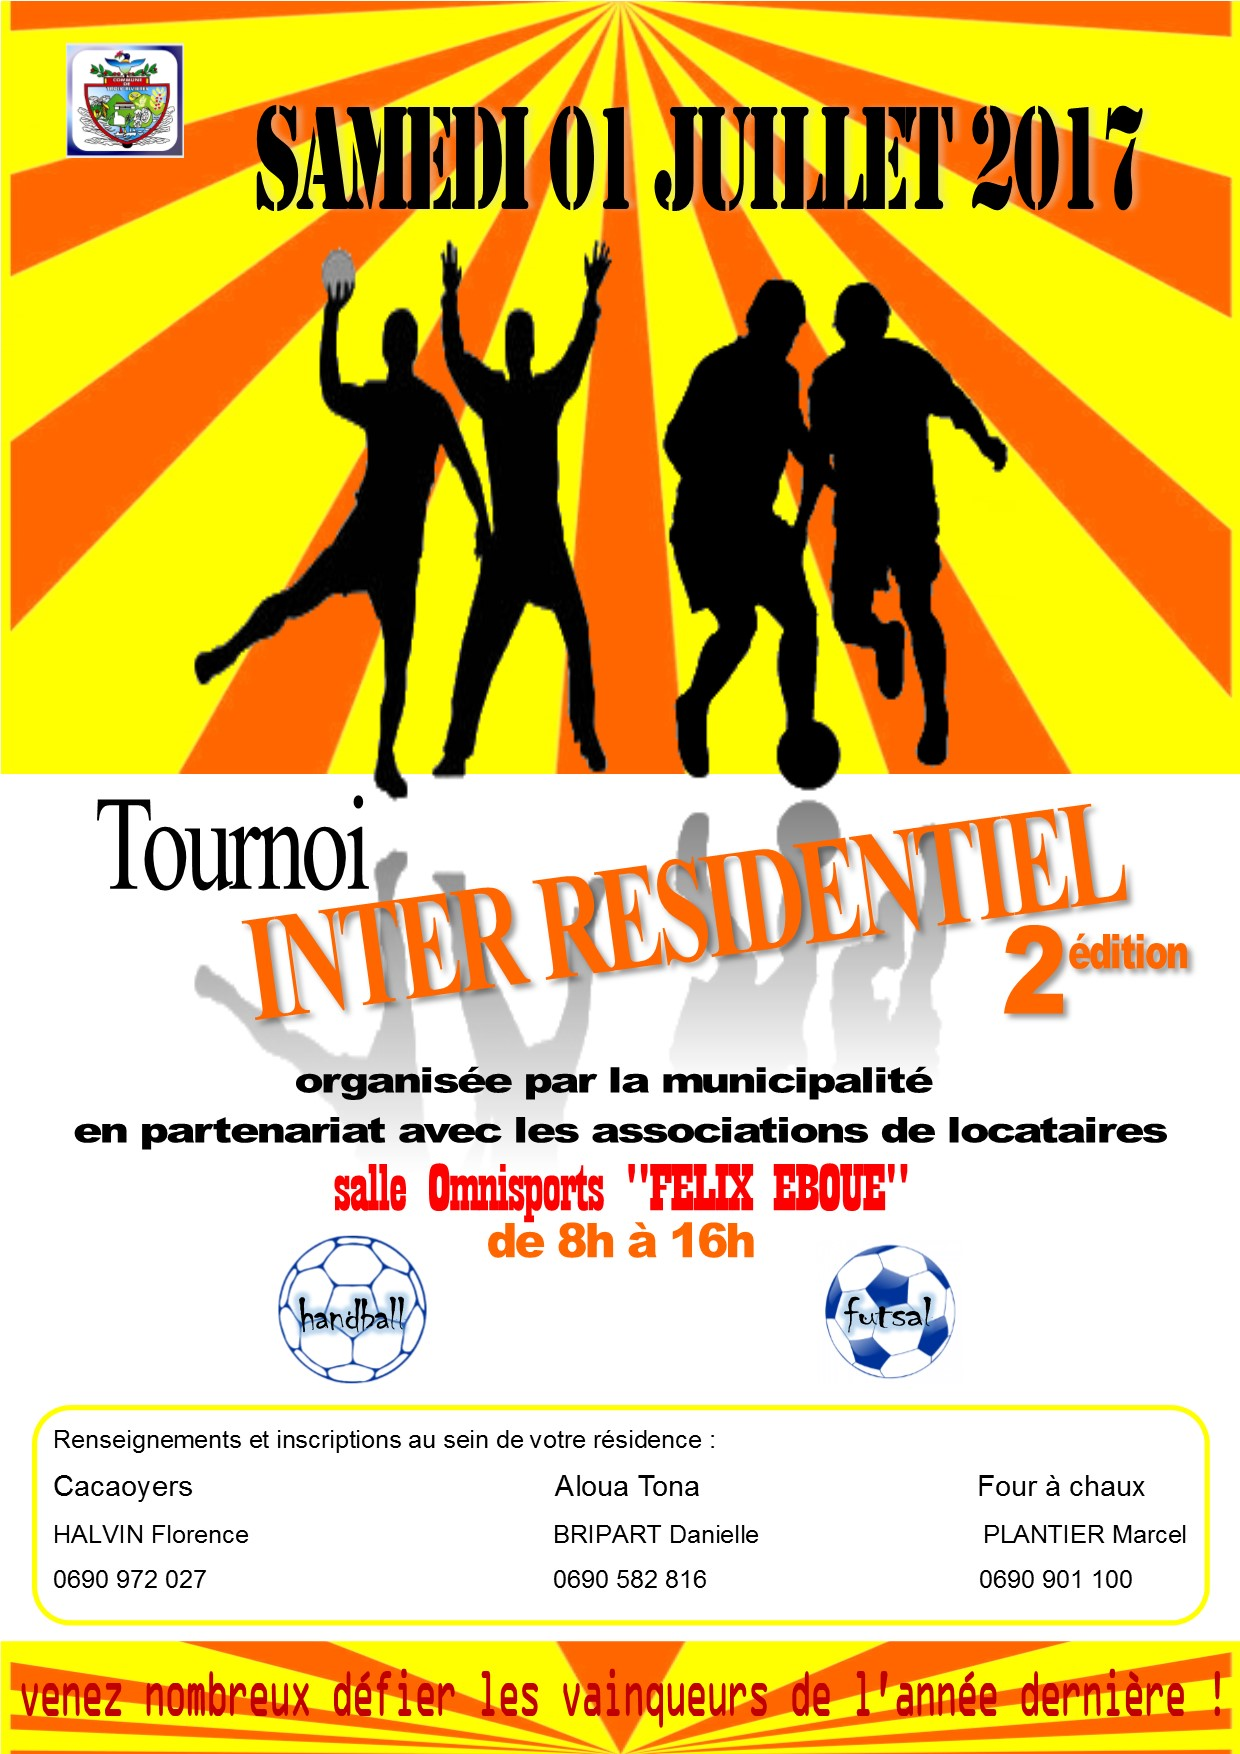 tournoi interesidentiel 2017-13 03 17 (2)